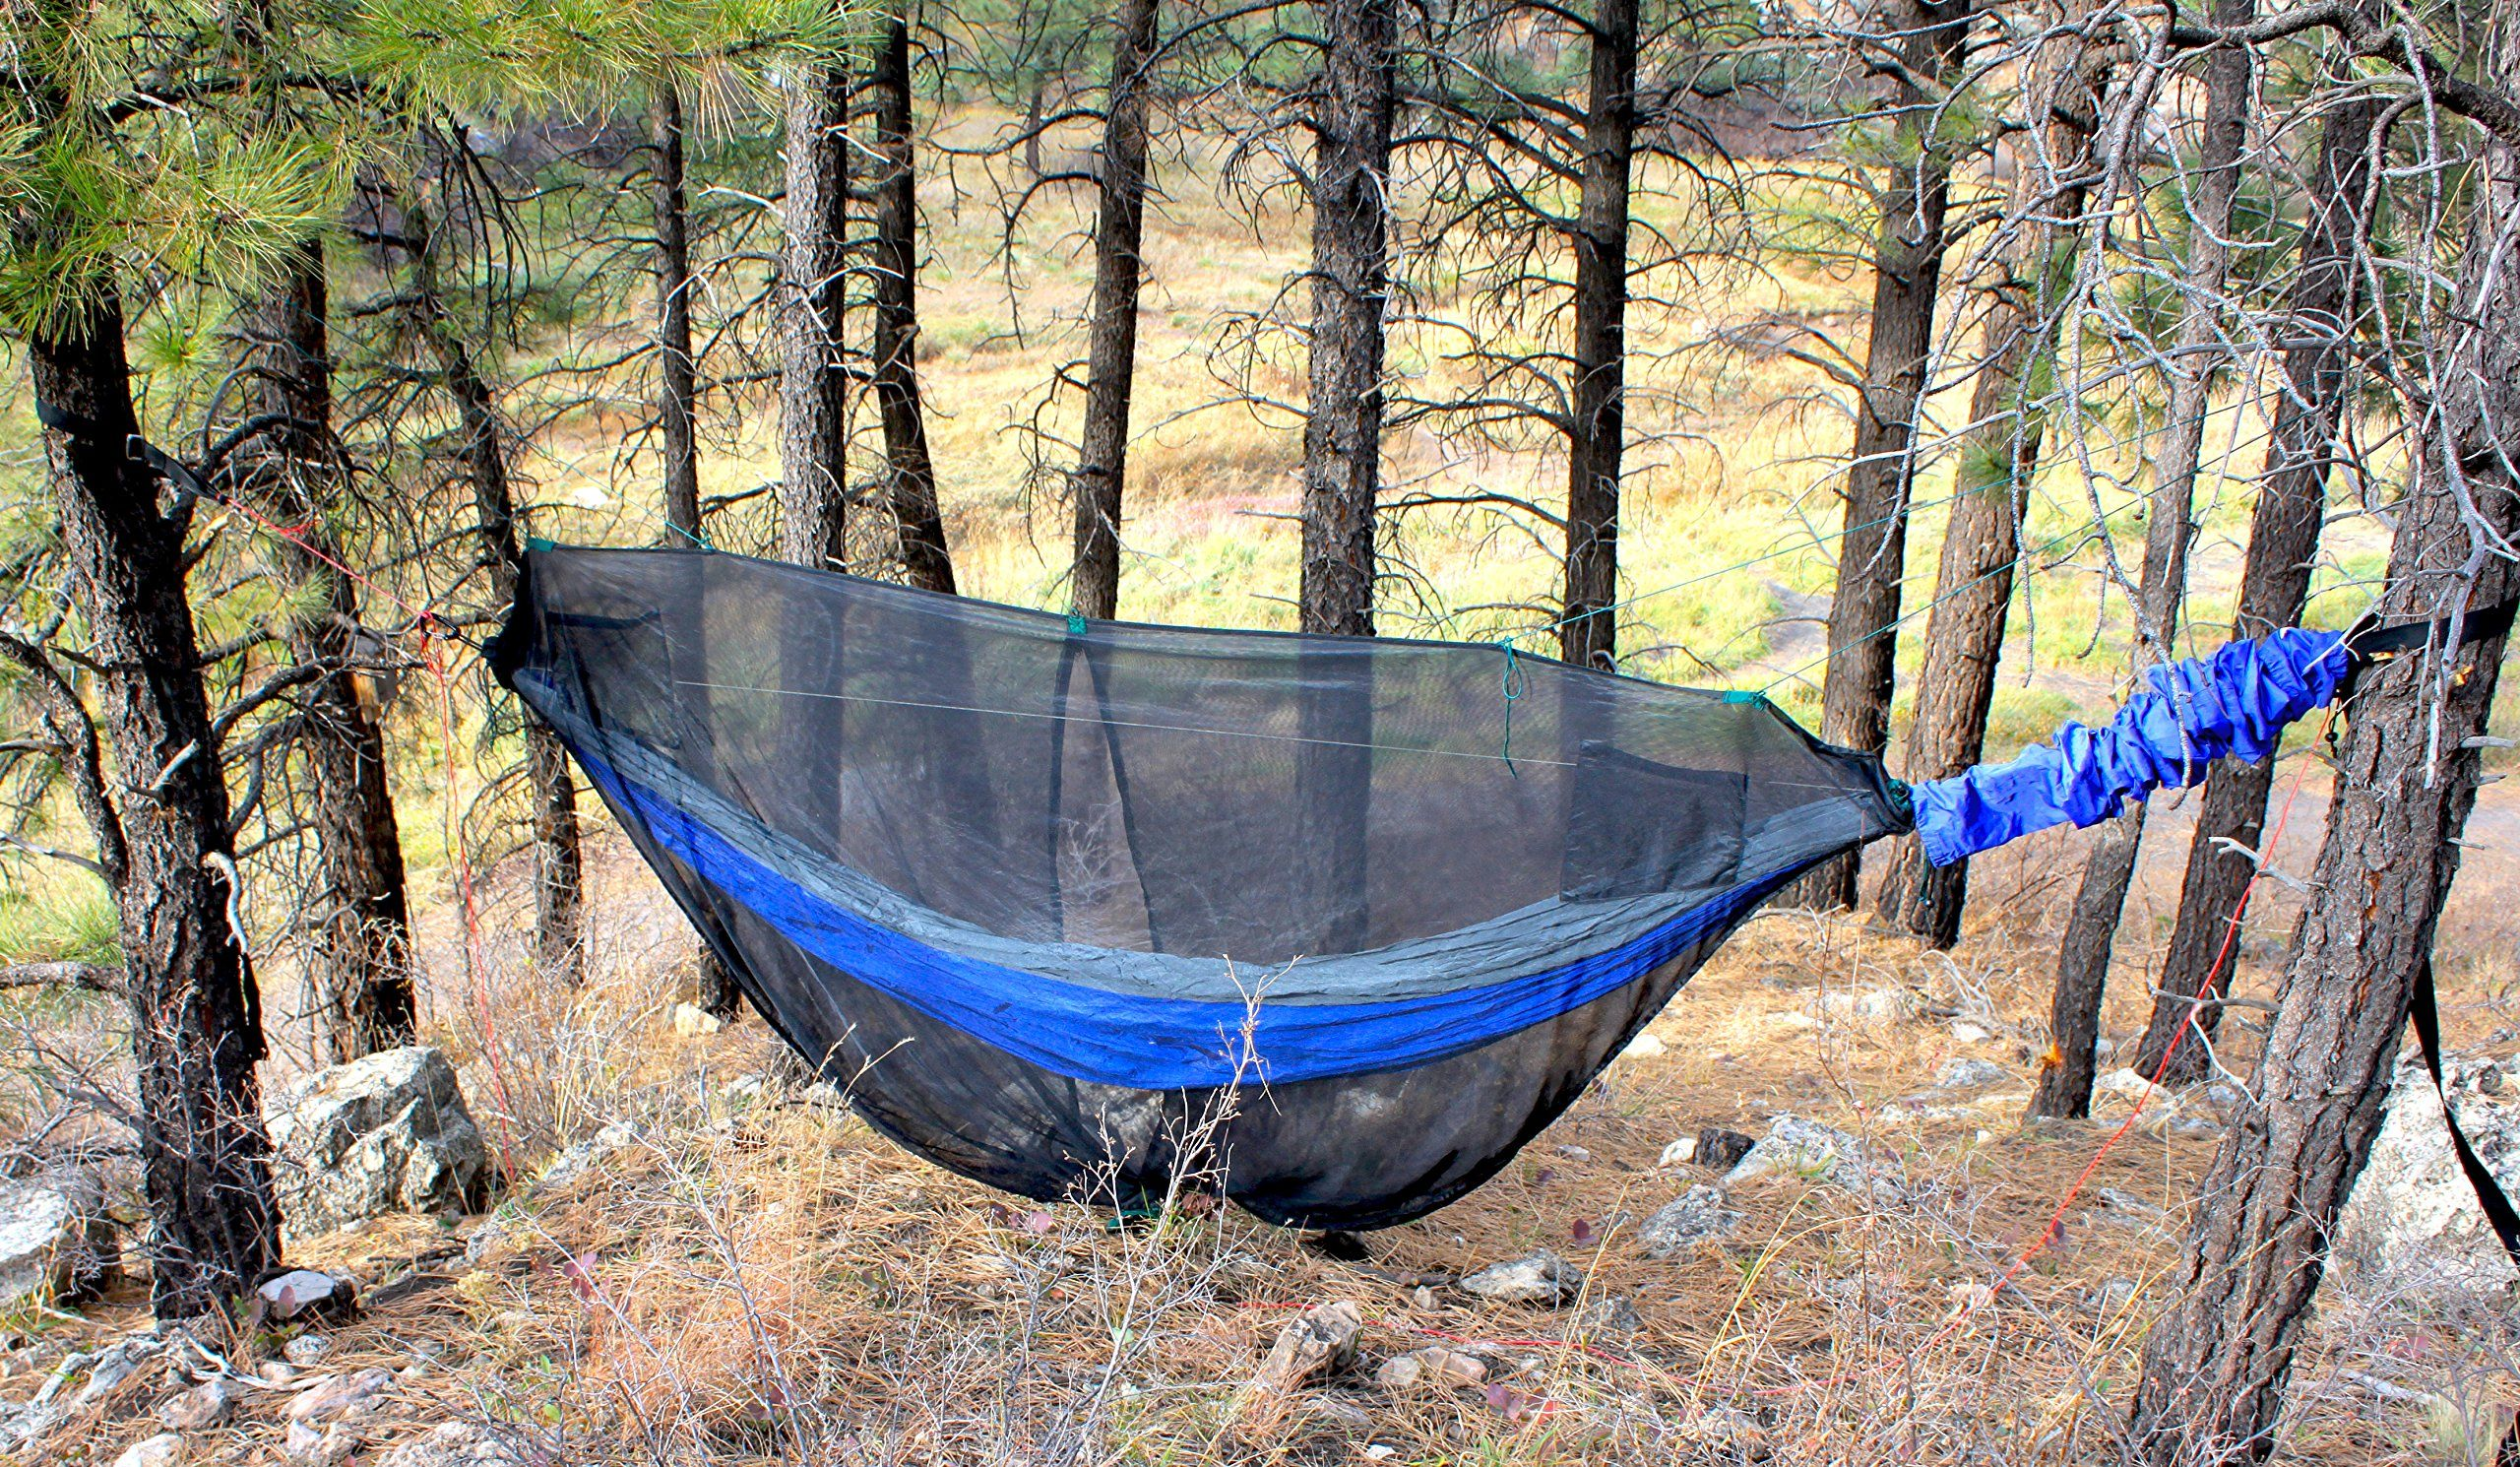 Hammock Bliss Mosquito Net Cocoon The Ultimate Bug Screen Mossy Netting Canopy For Your Camping Hammock With Insect Pro Hammock Camping Tent Camping Bug Screen